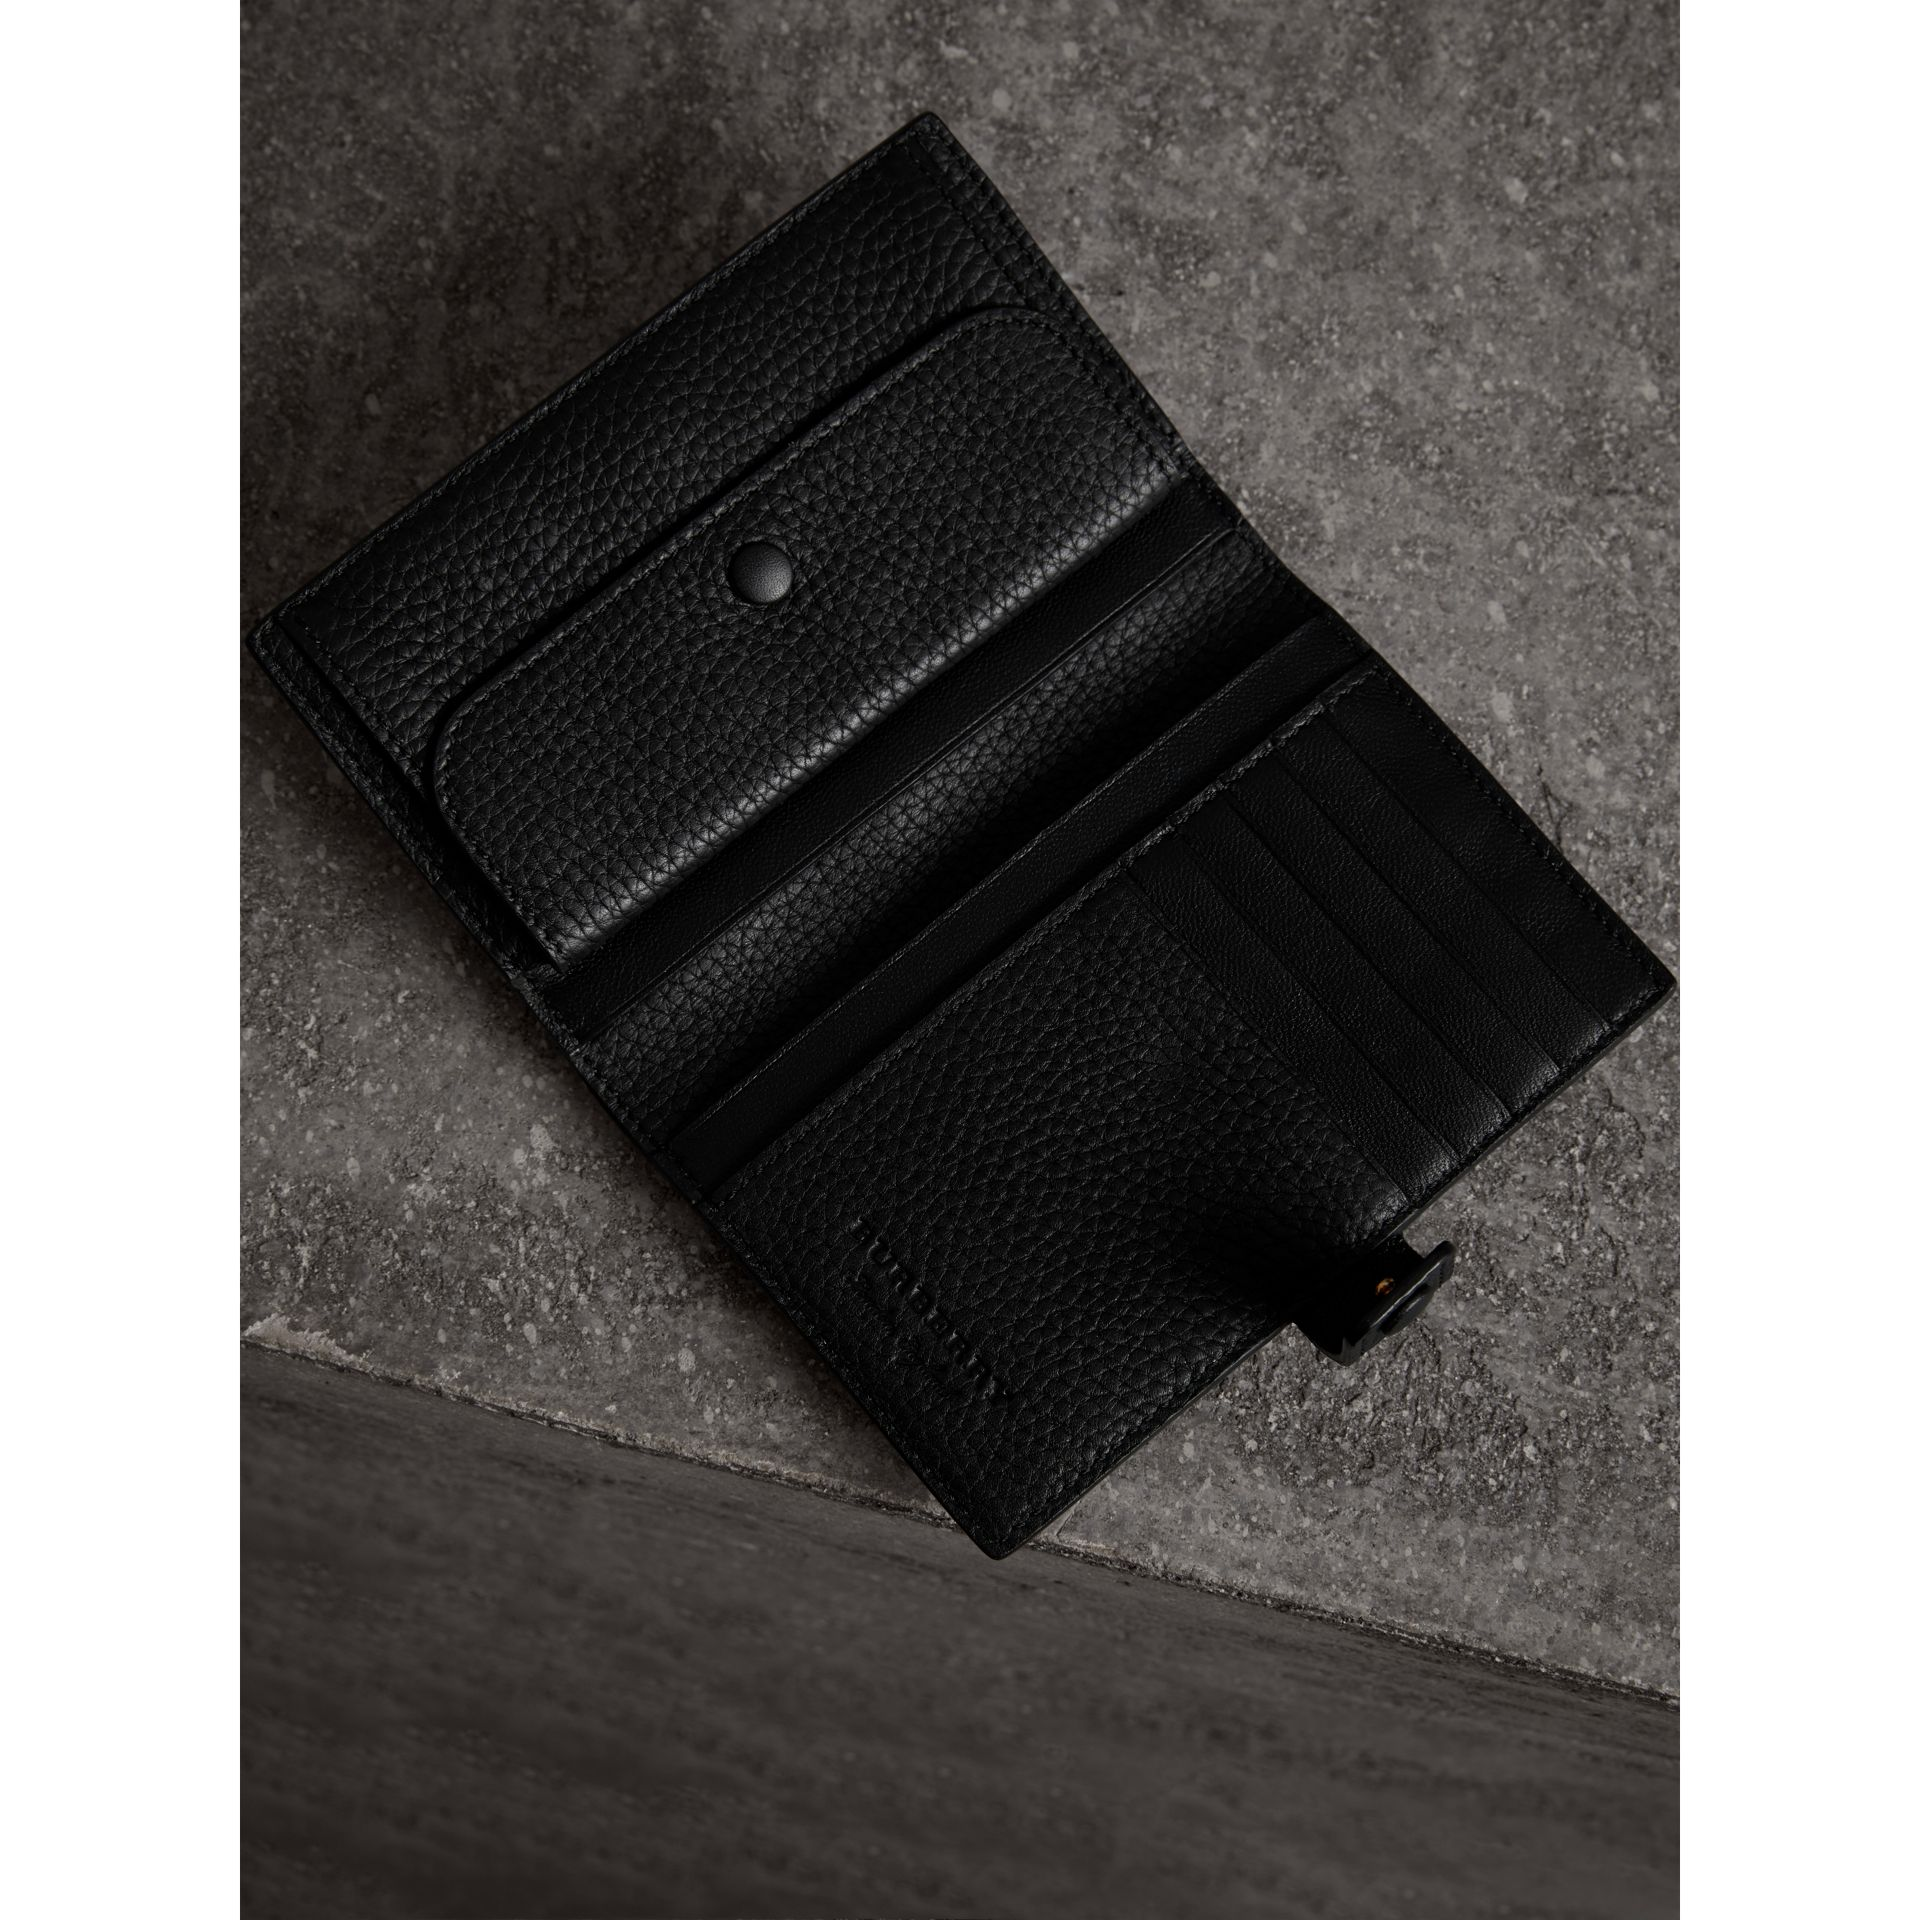 Embossed Grainy Leather Folding Wallet in Black - Women | Burberry Australia - gallery image 3